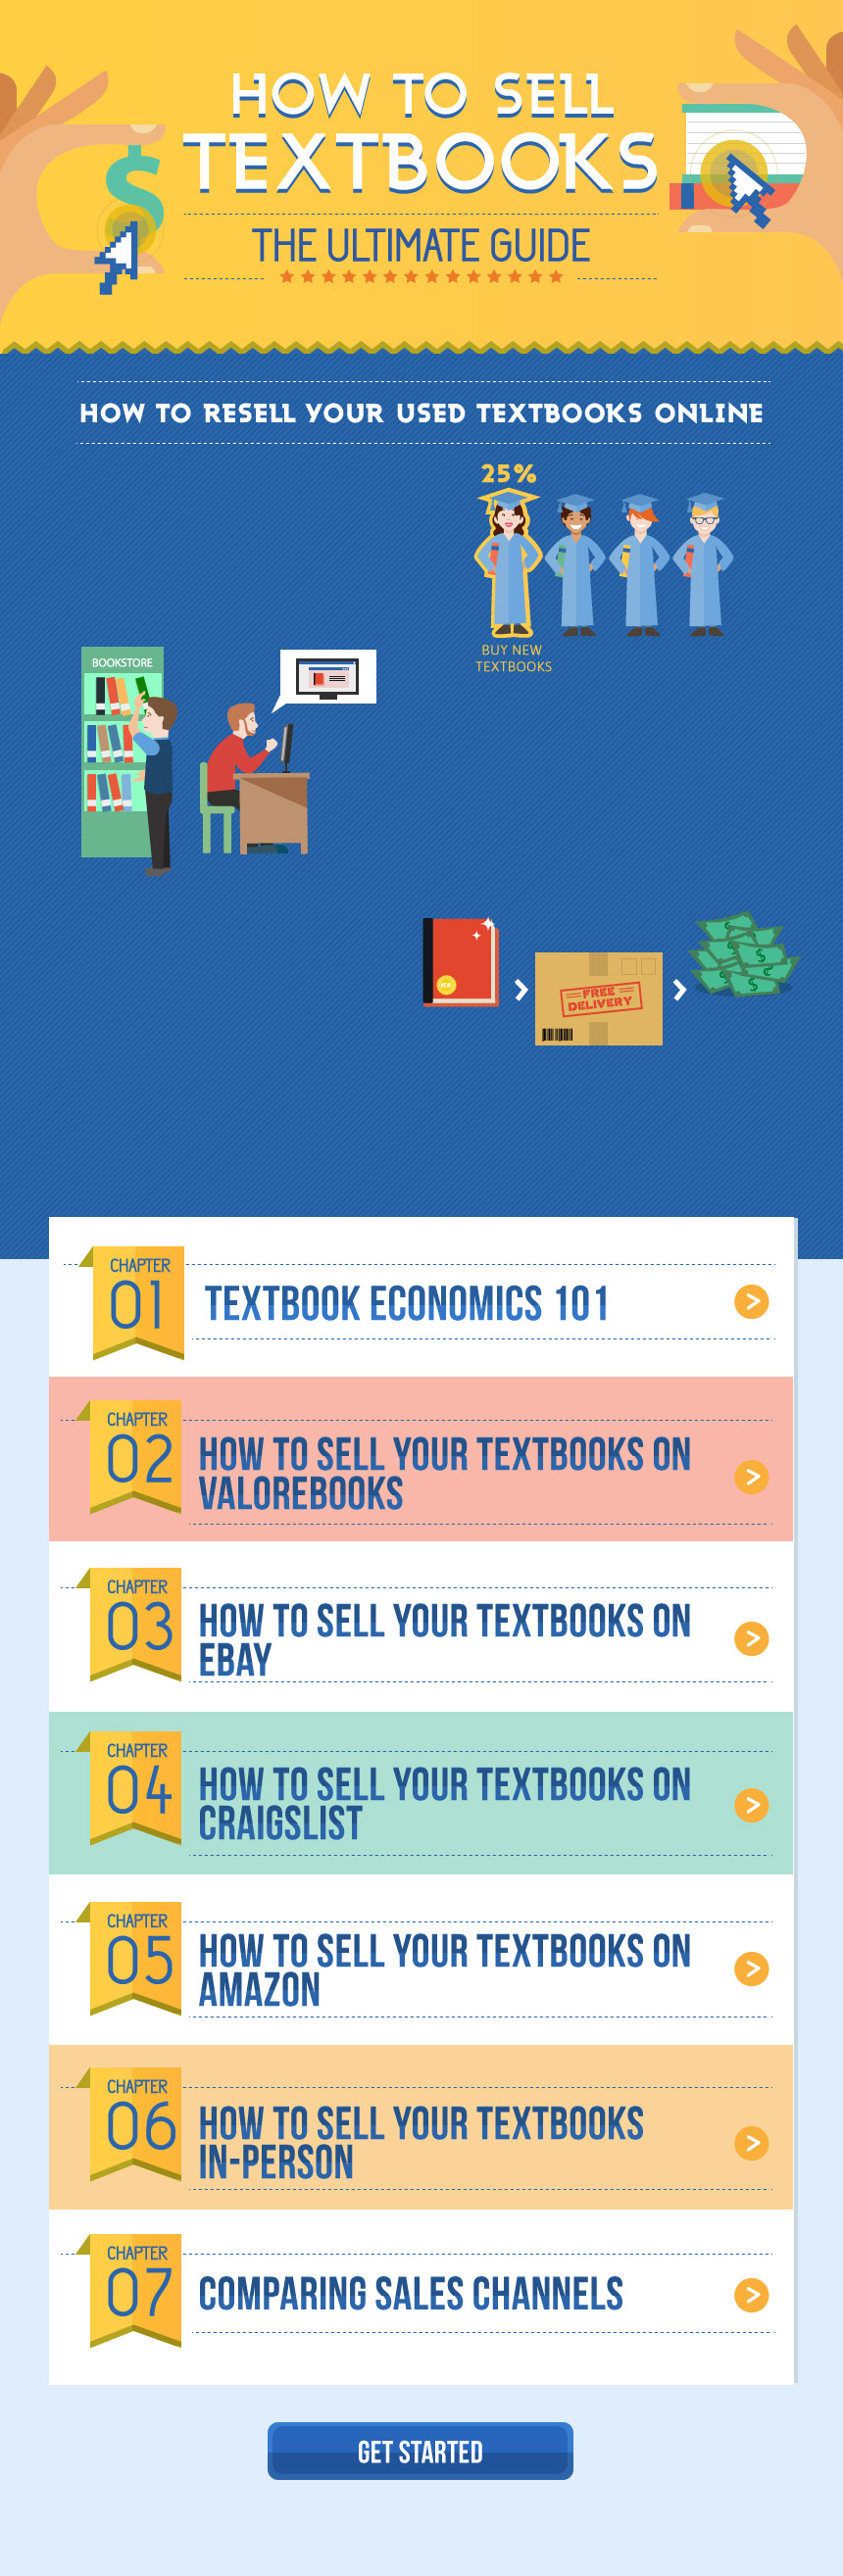 Can i sell my college books?